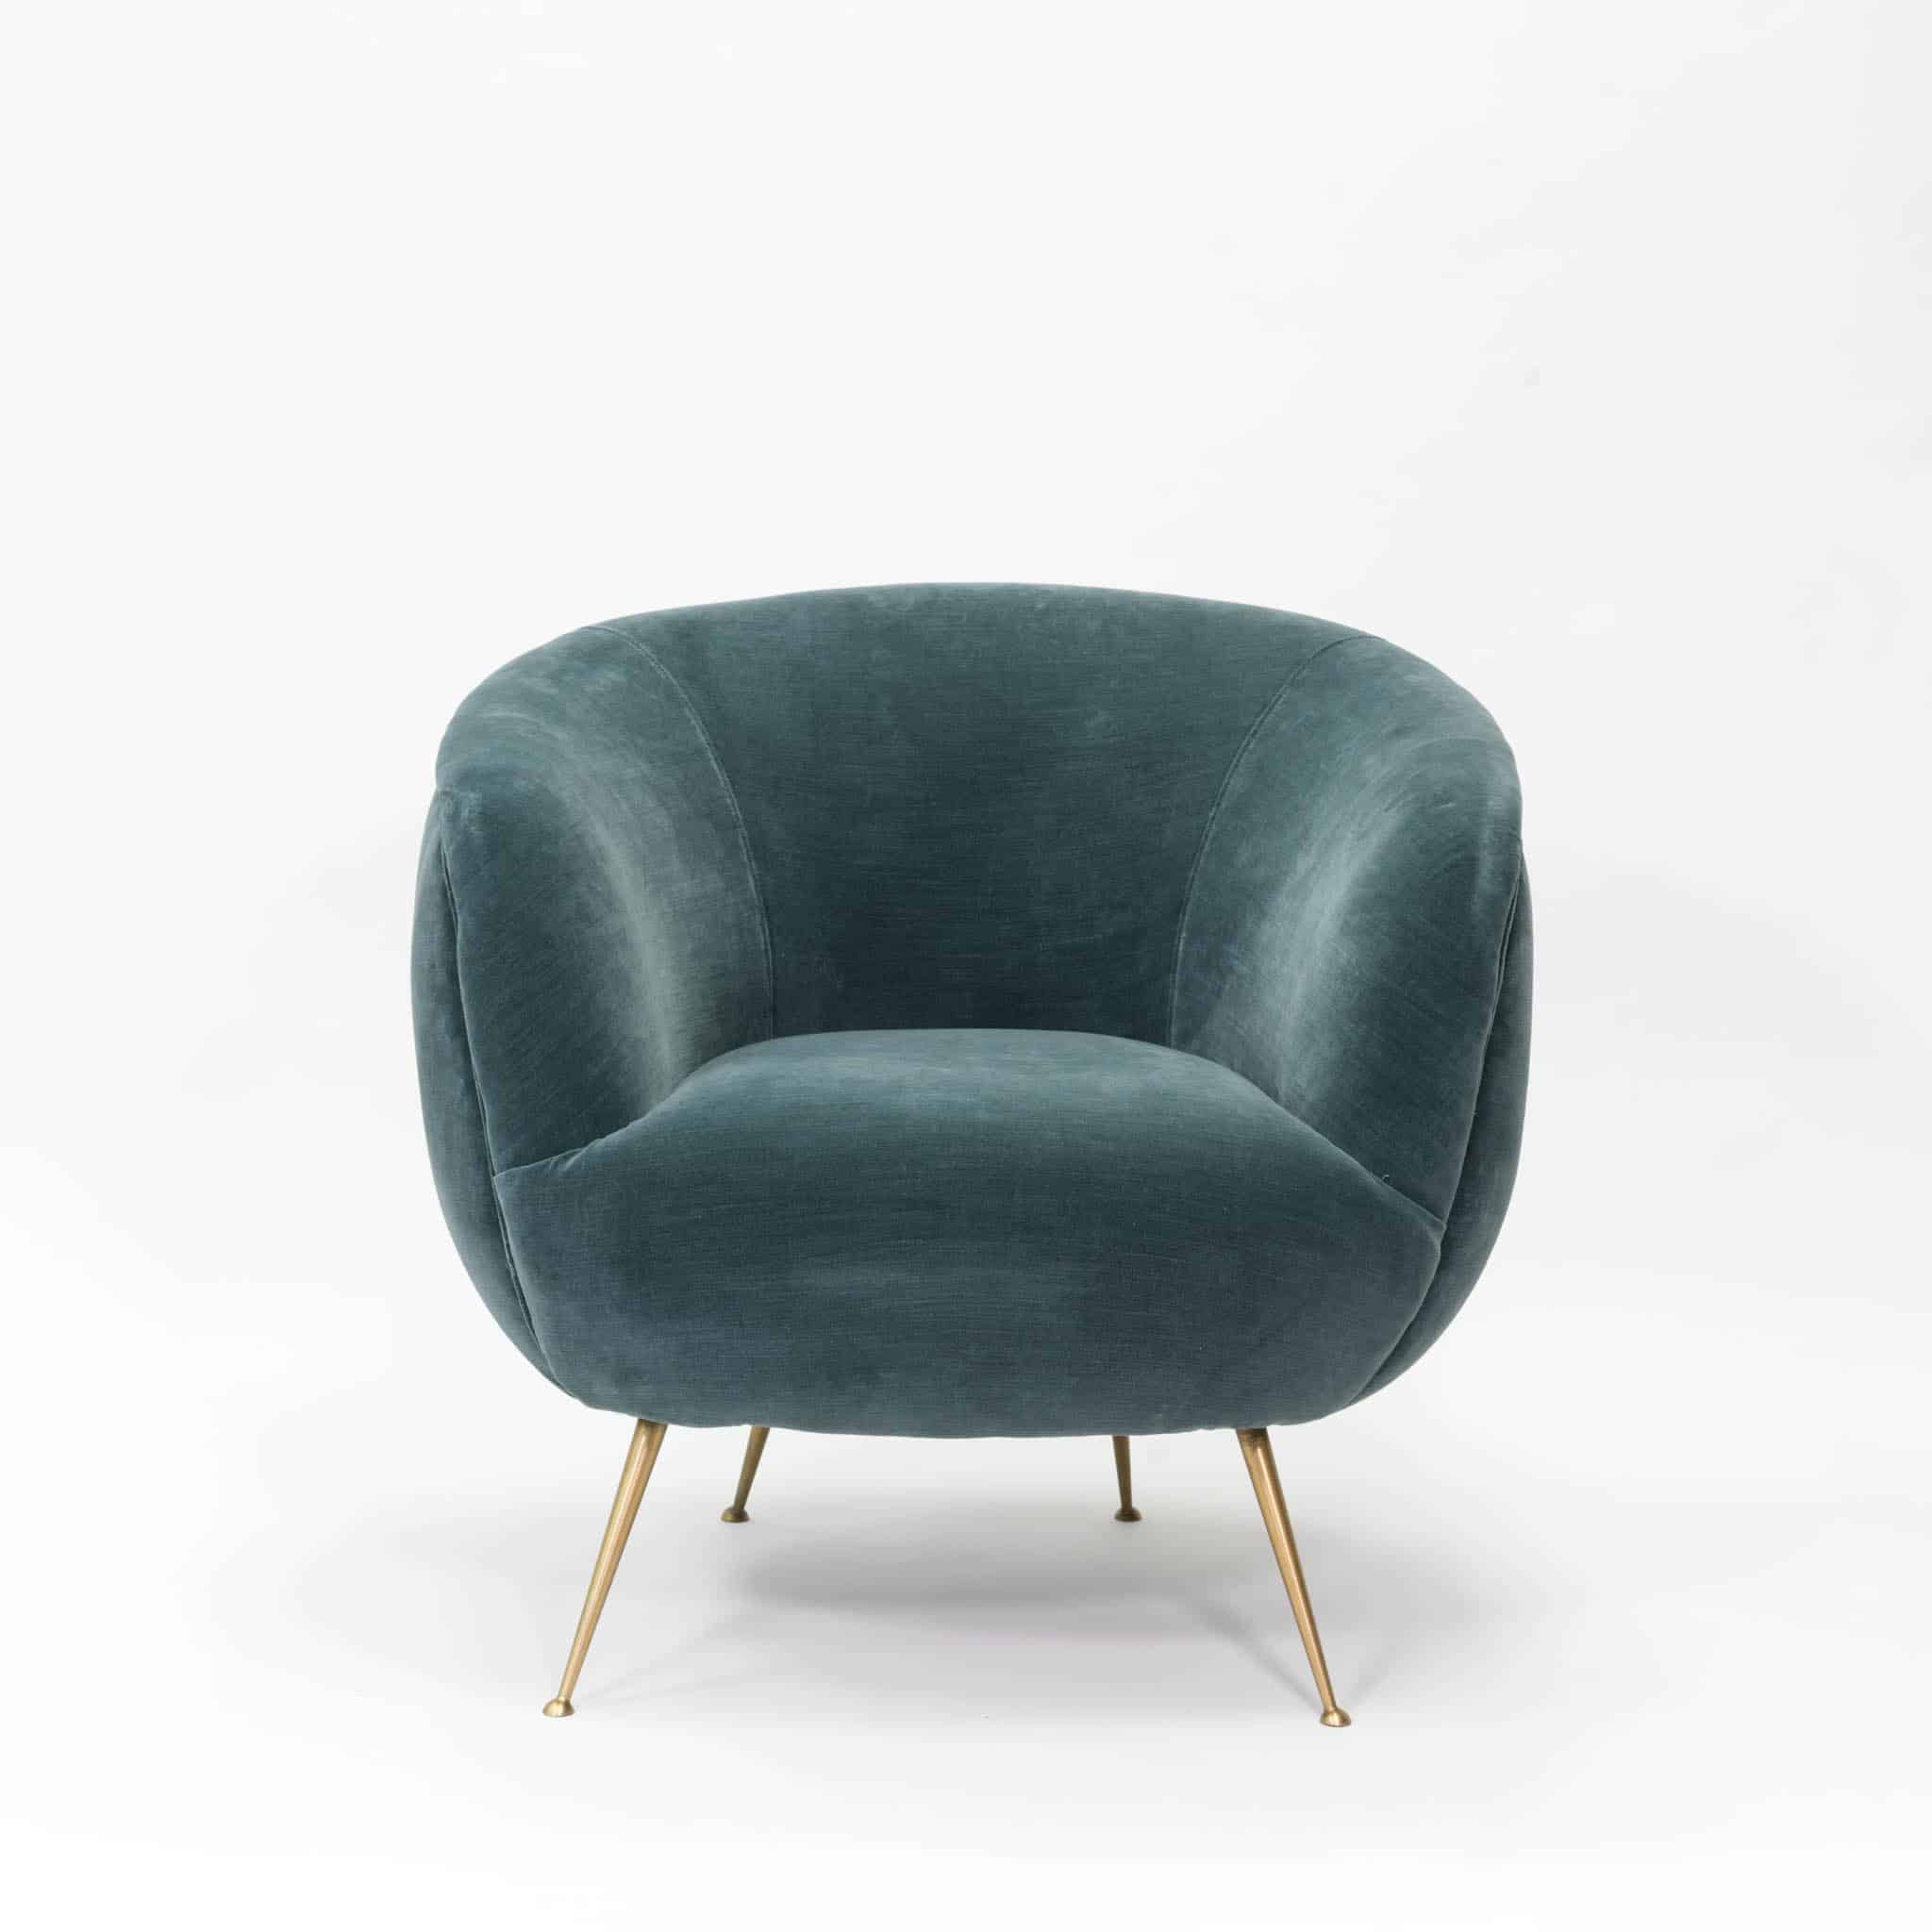 Green velvet club chair with gold legs